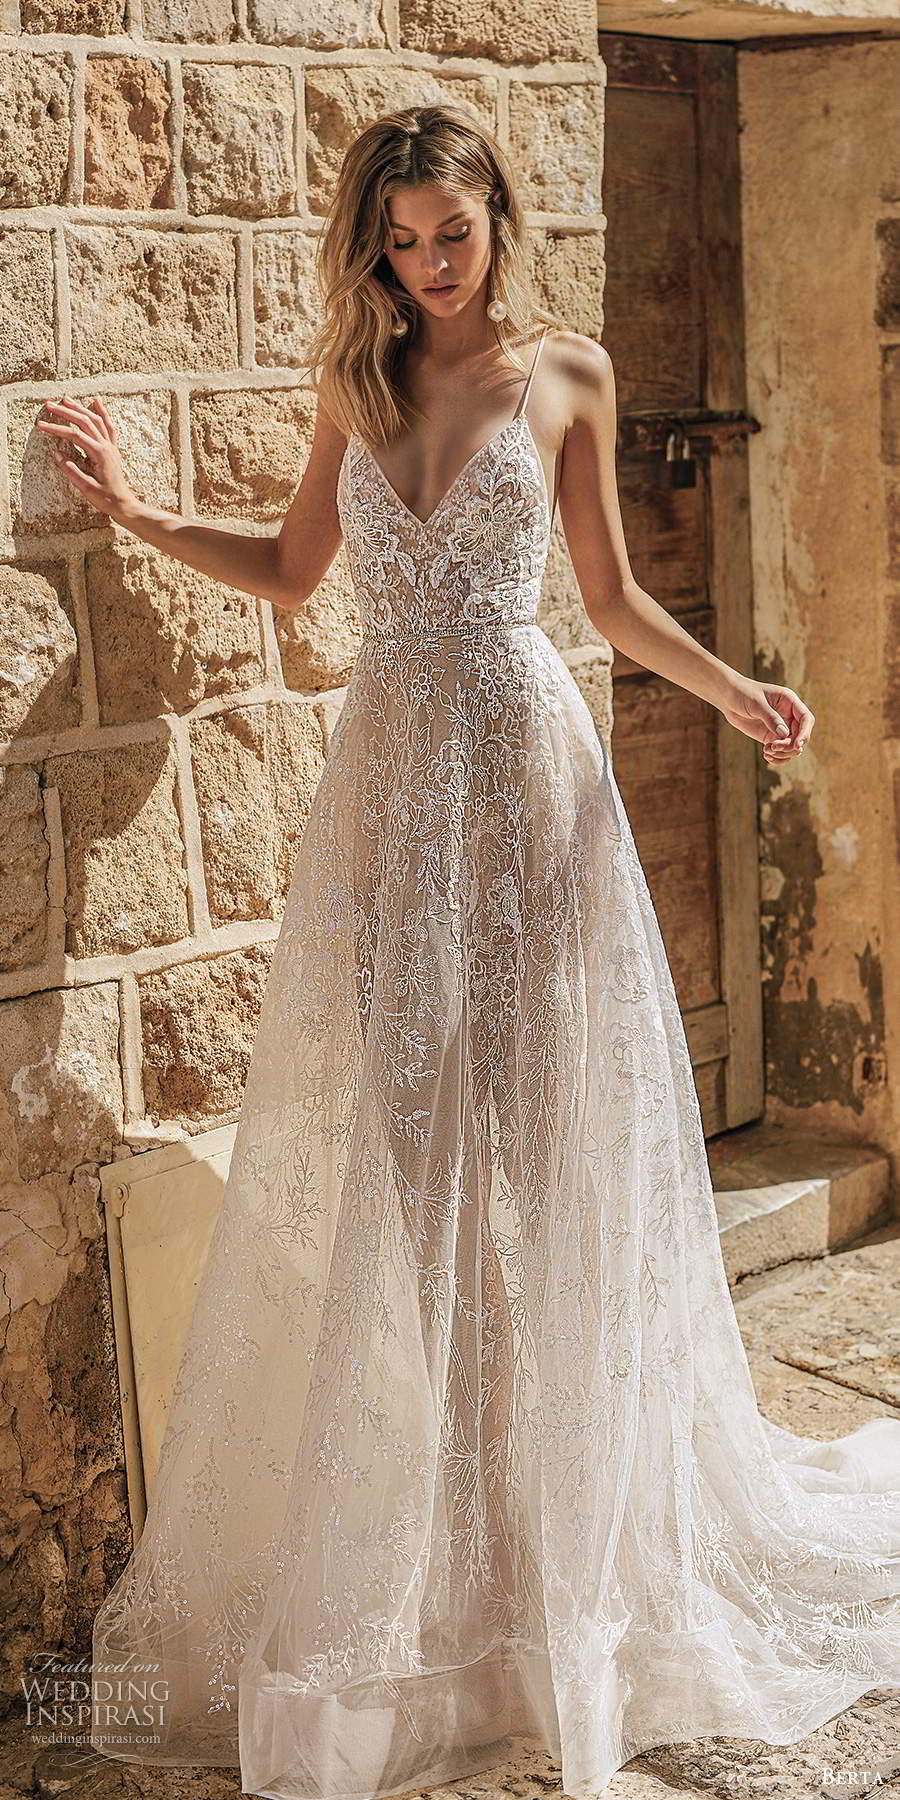 berta 2020 muse bridal sleeveless thin straps v neckline fully embellished lace a line ball gown romantic wedding dess chapel train (1) mv